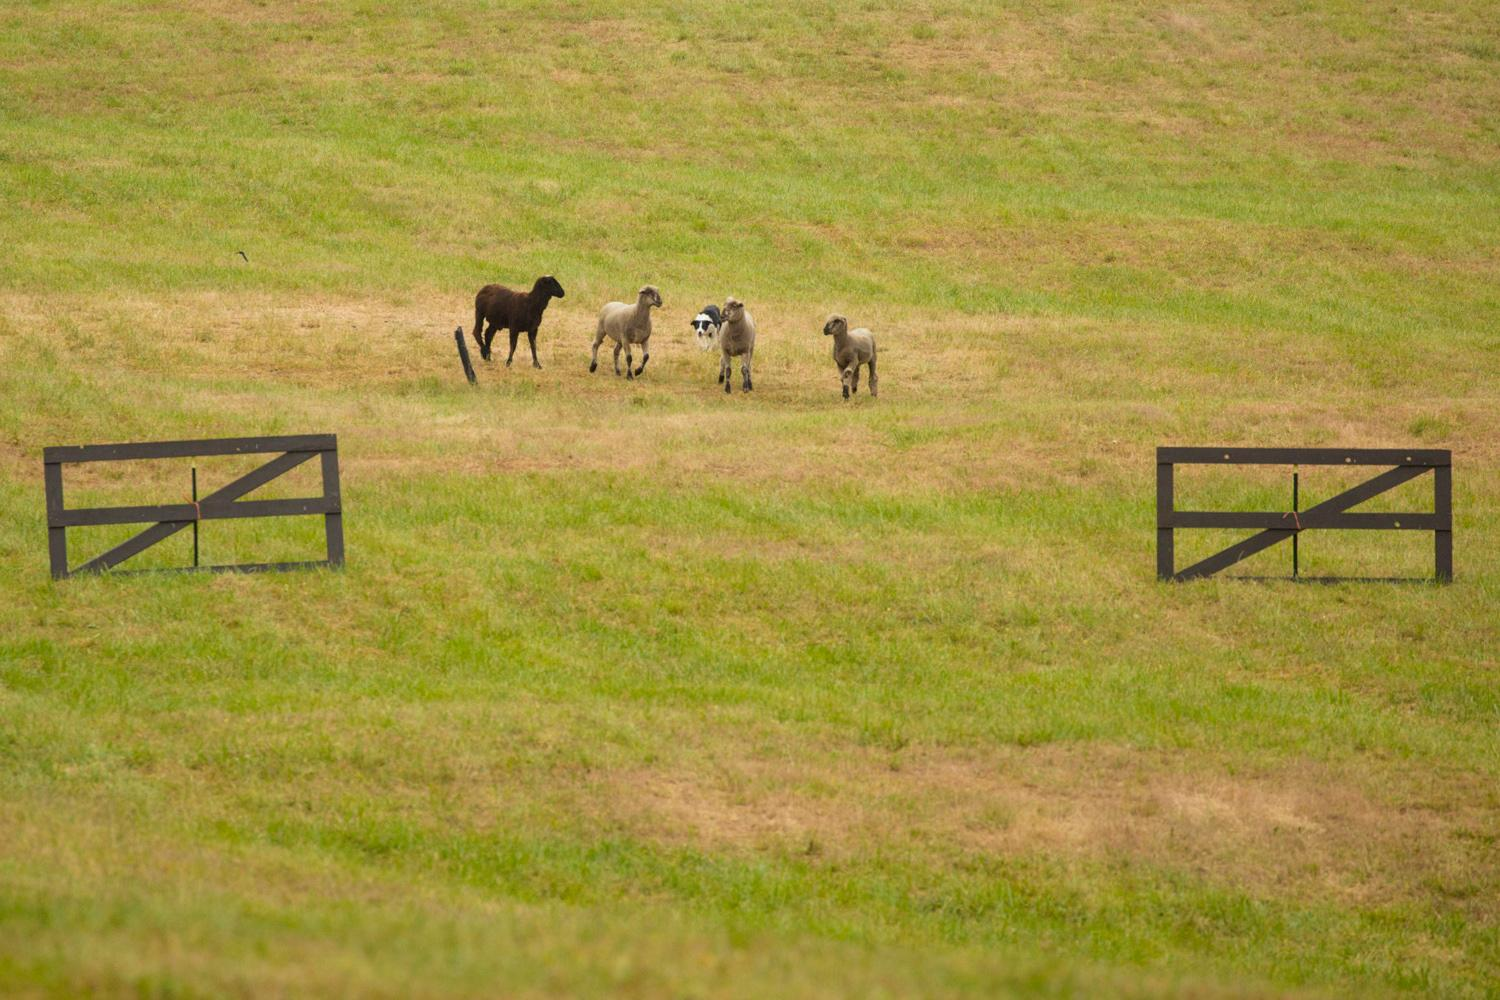 Thousands will come out to the Annual Sheepdog Classic at Misty Isle Farms on Vashon Island. Visitors enjoy local fare, fiber arts, and other artisan crafts while experiencing this highly regarded national competition. The Sheepdog Classic runs Thursday through Sunday and is less than a 20 minute ferry ride from West Seattle. (Sy Bean / Seattle Refined)